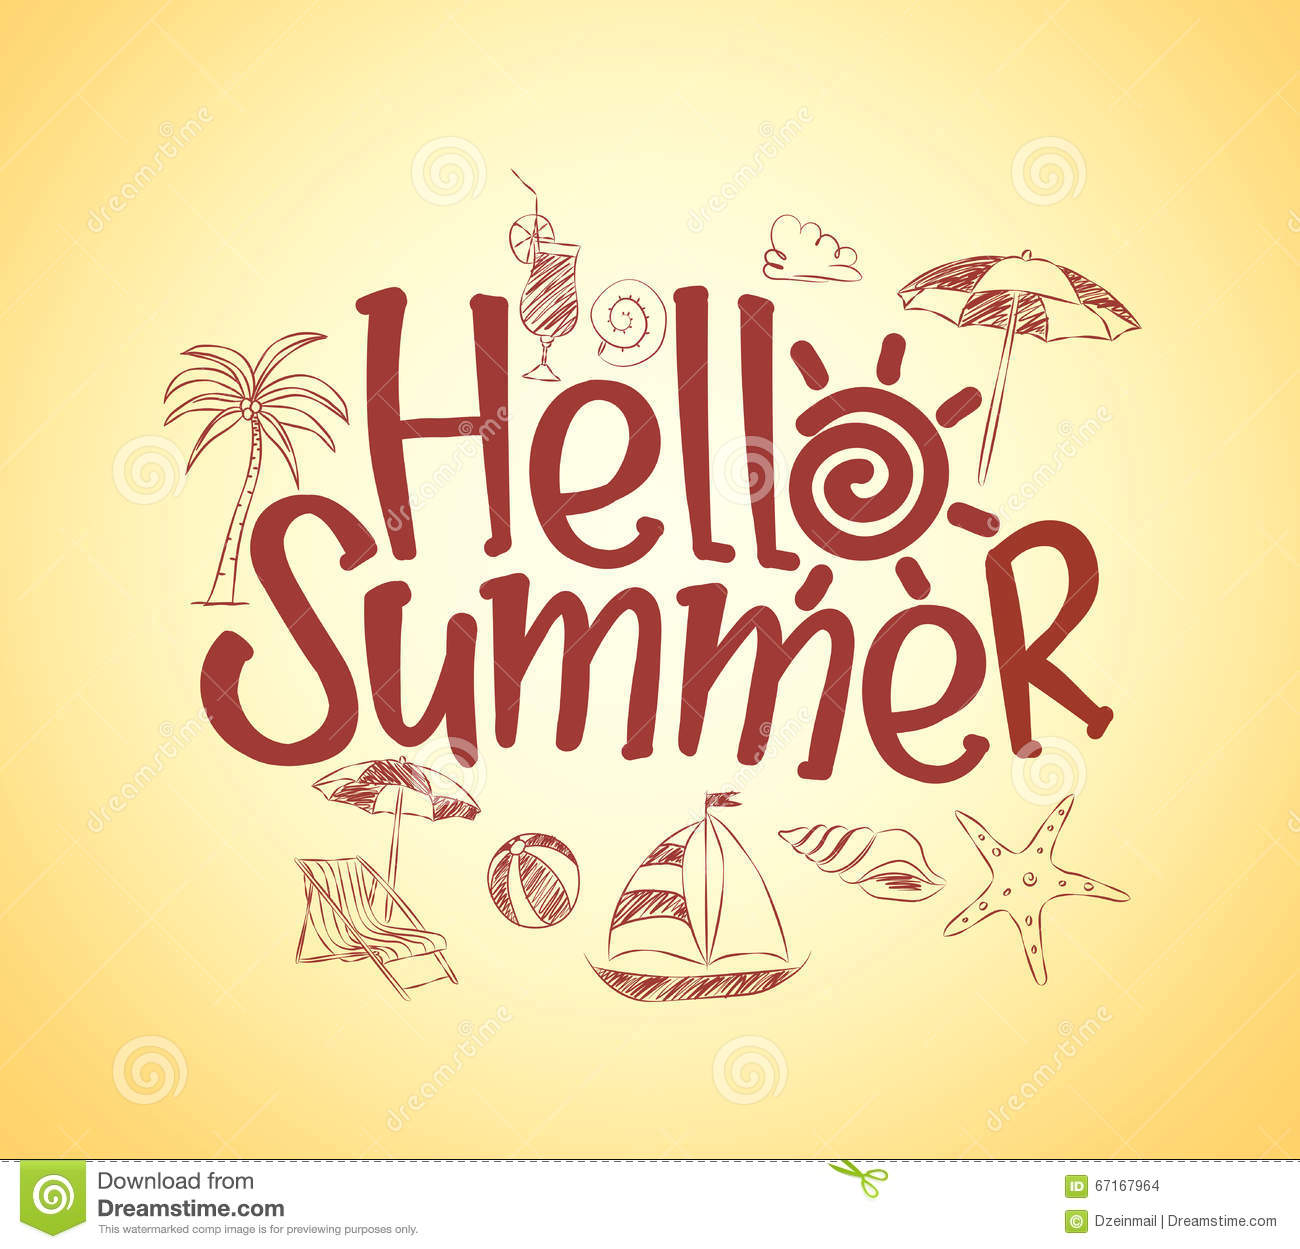 Poster design vector graphics - Simple Hello Summer Poster Design With Hand Drawing Vector Stock Vector